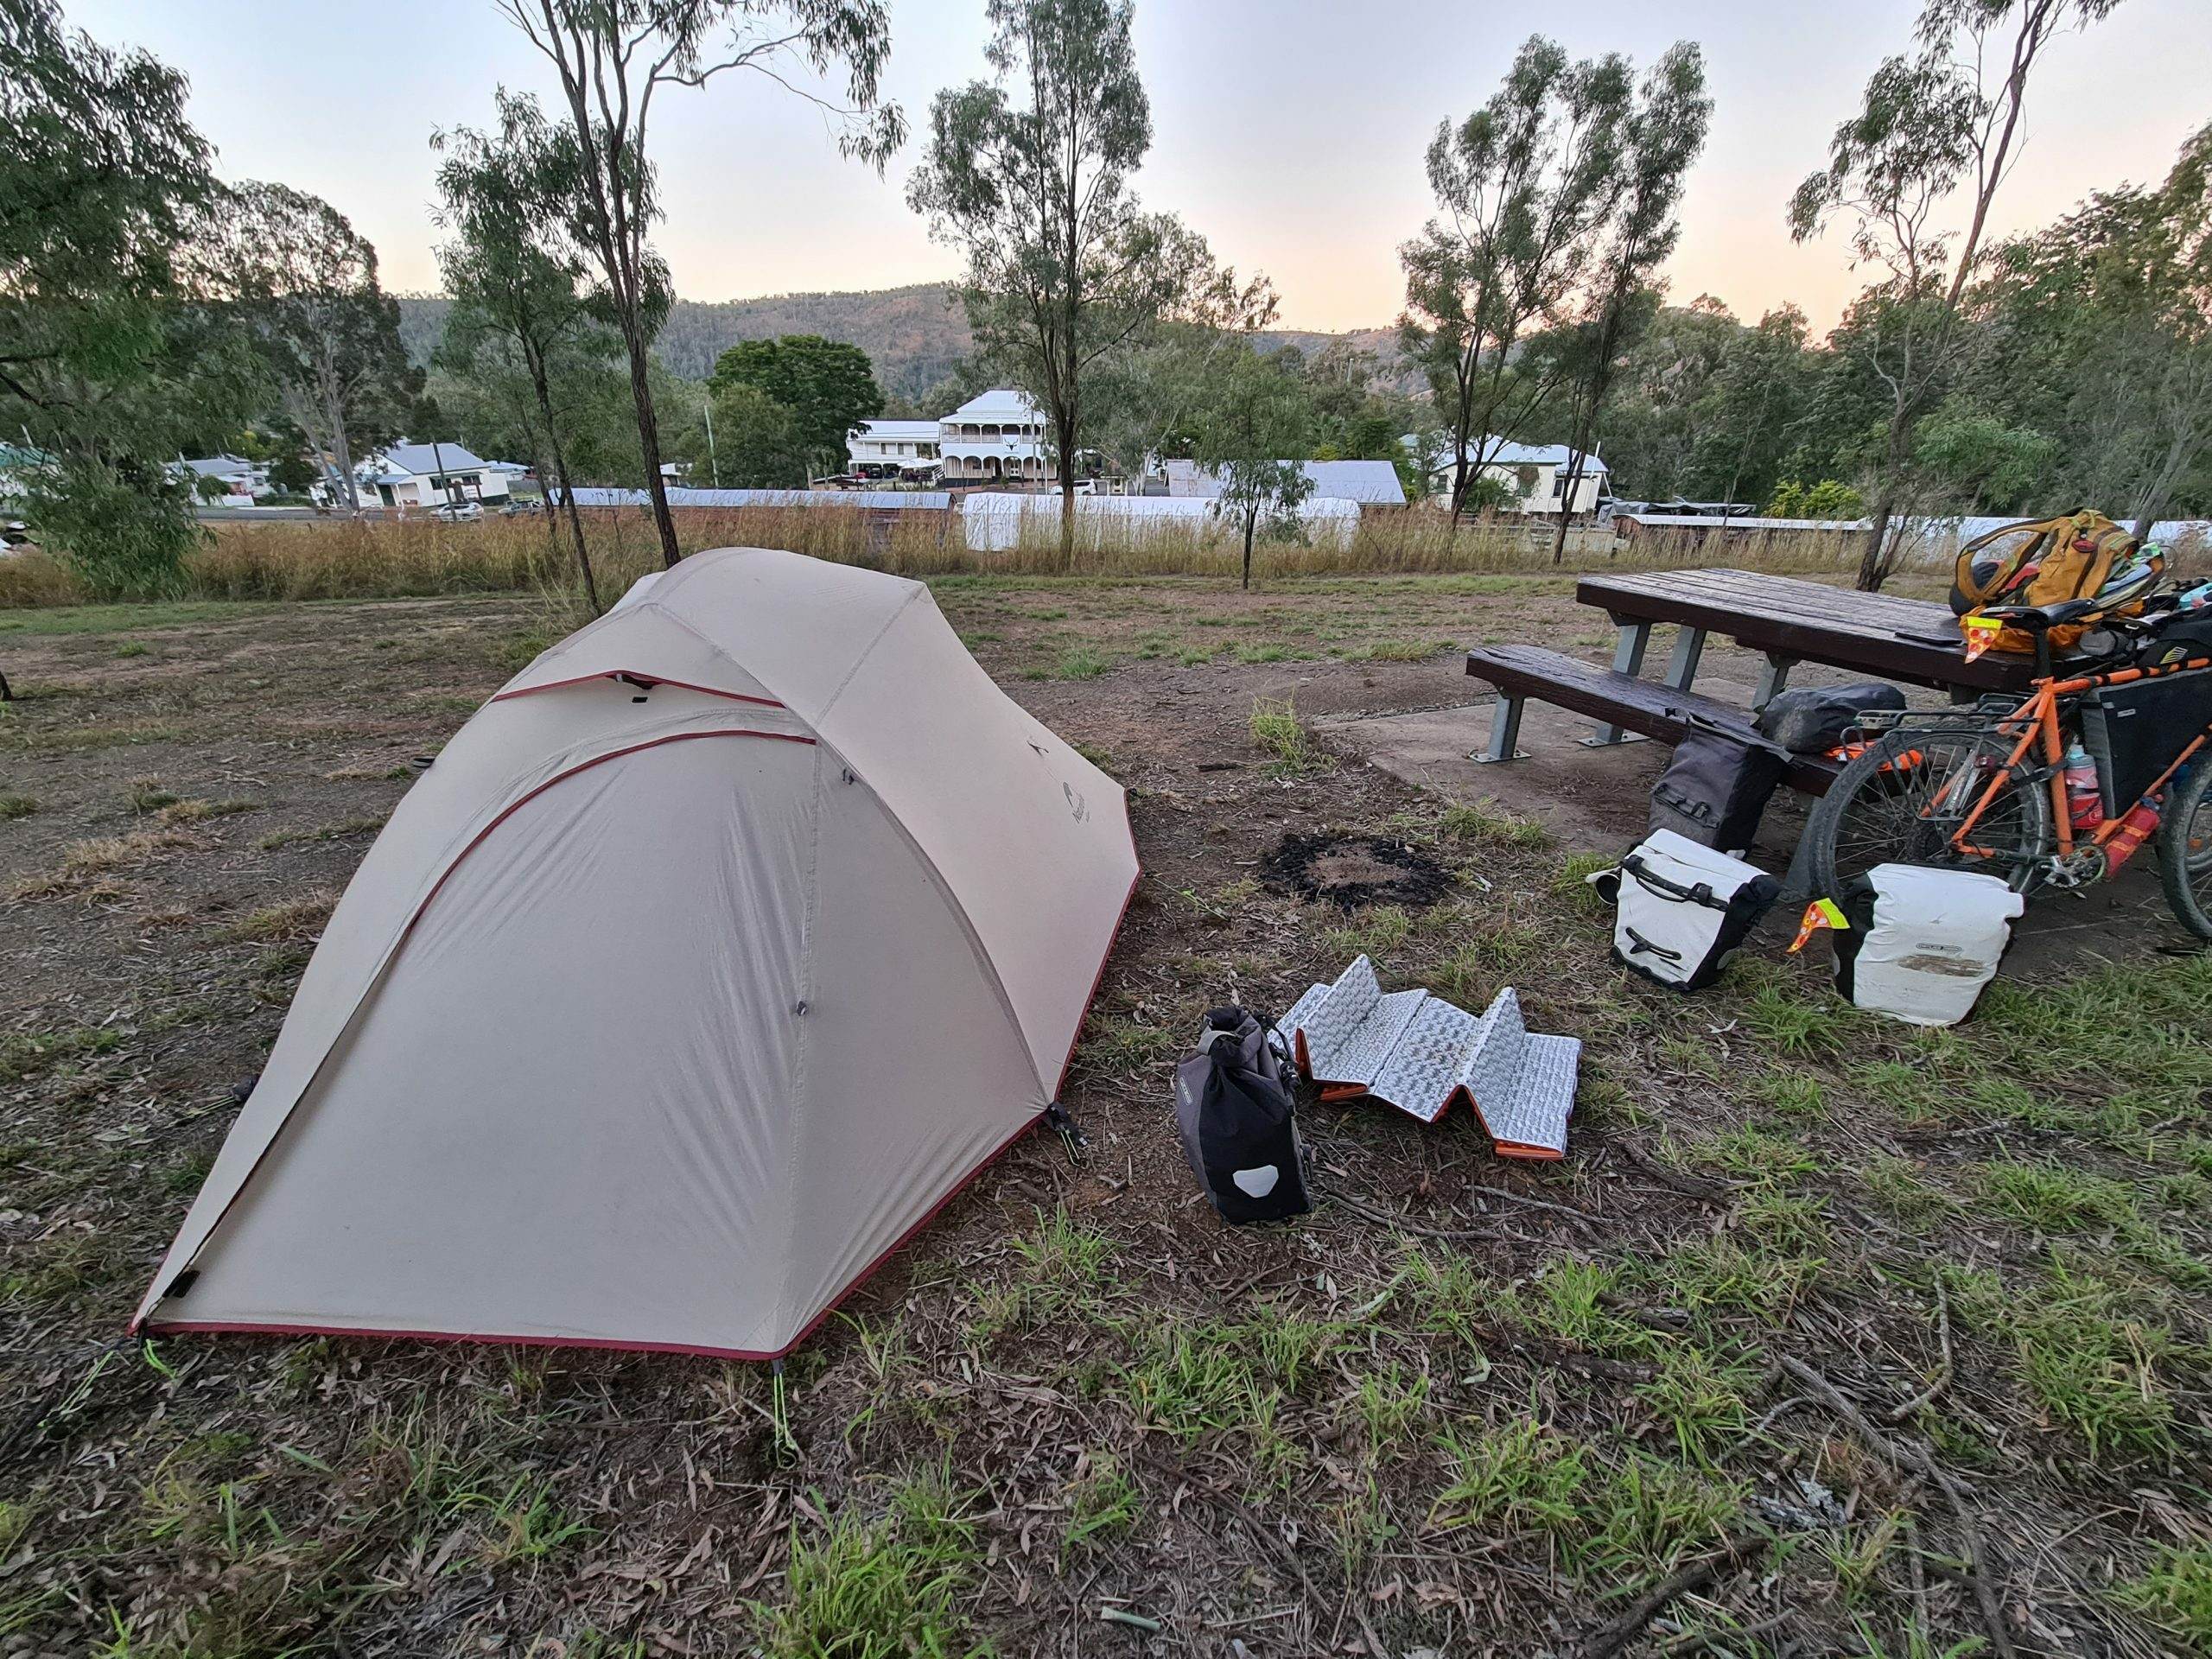 Camping at the Linville Hotel while Cycling the Brisbane Valley Rail Trail (BVRT)